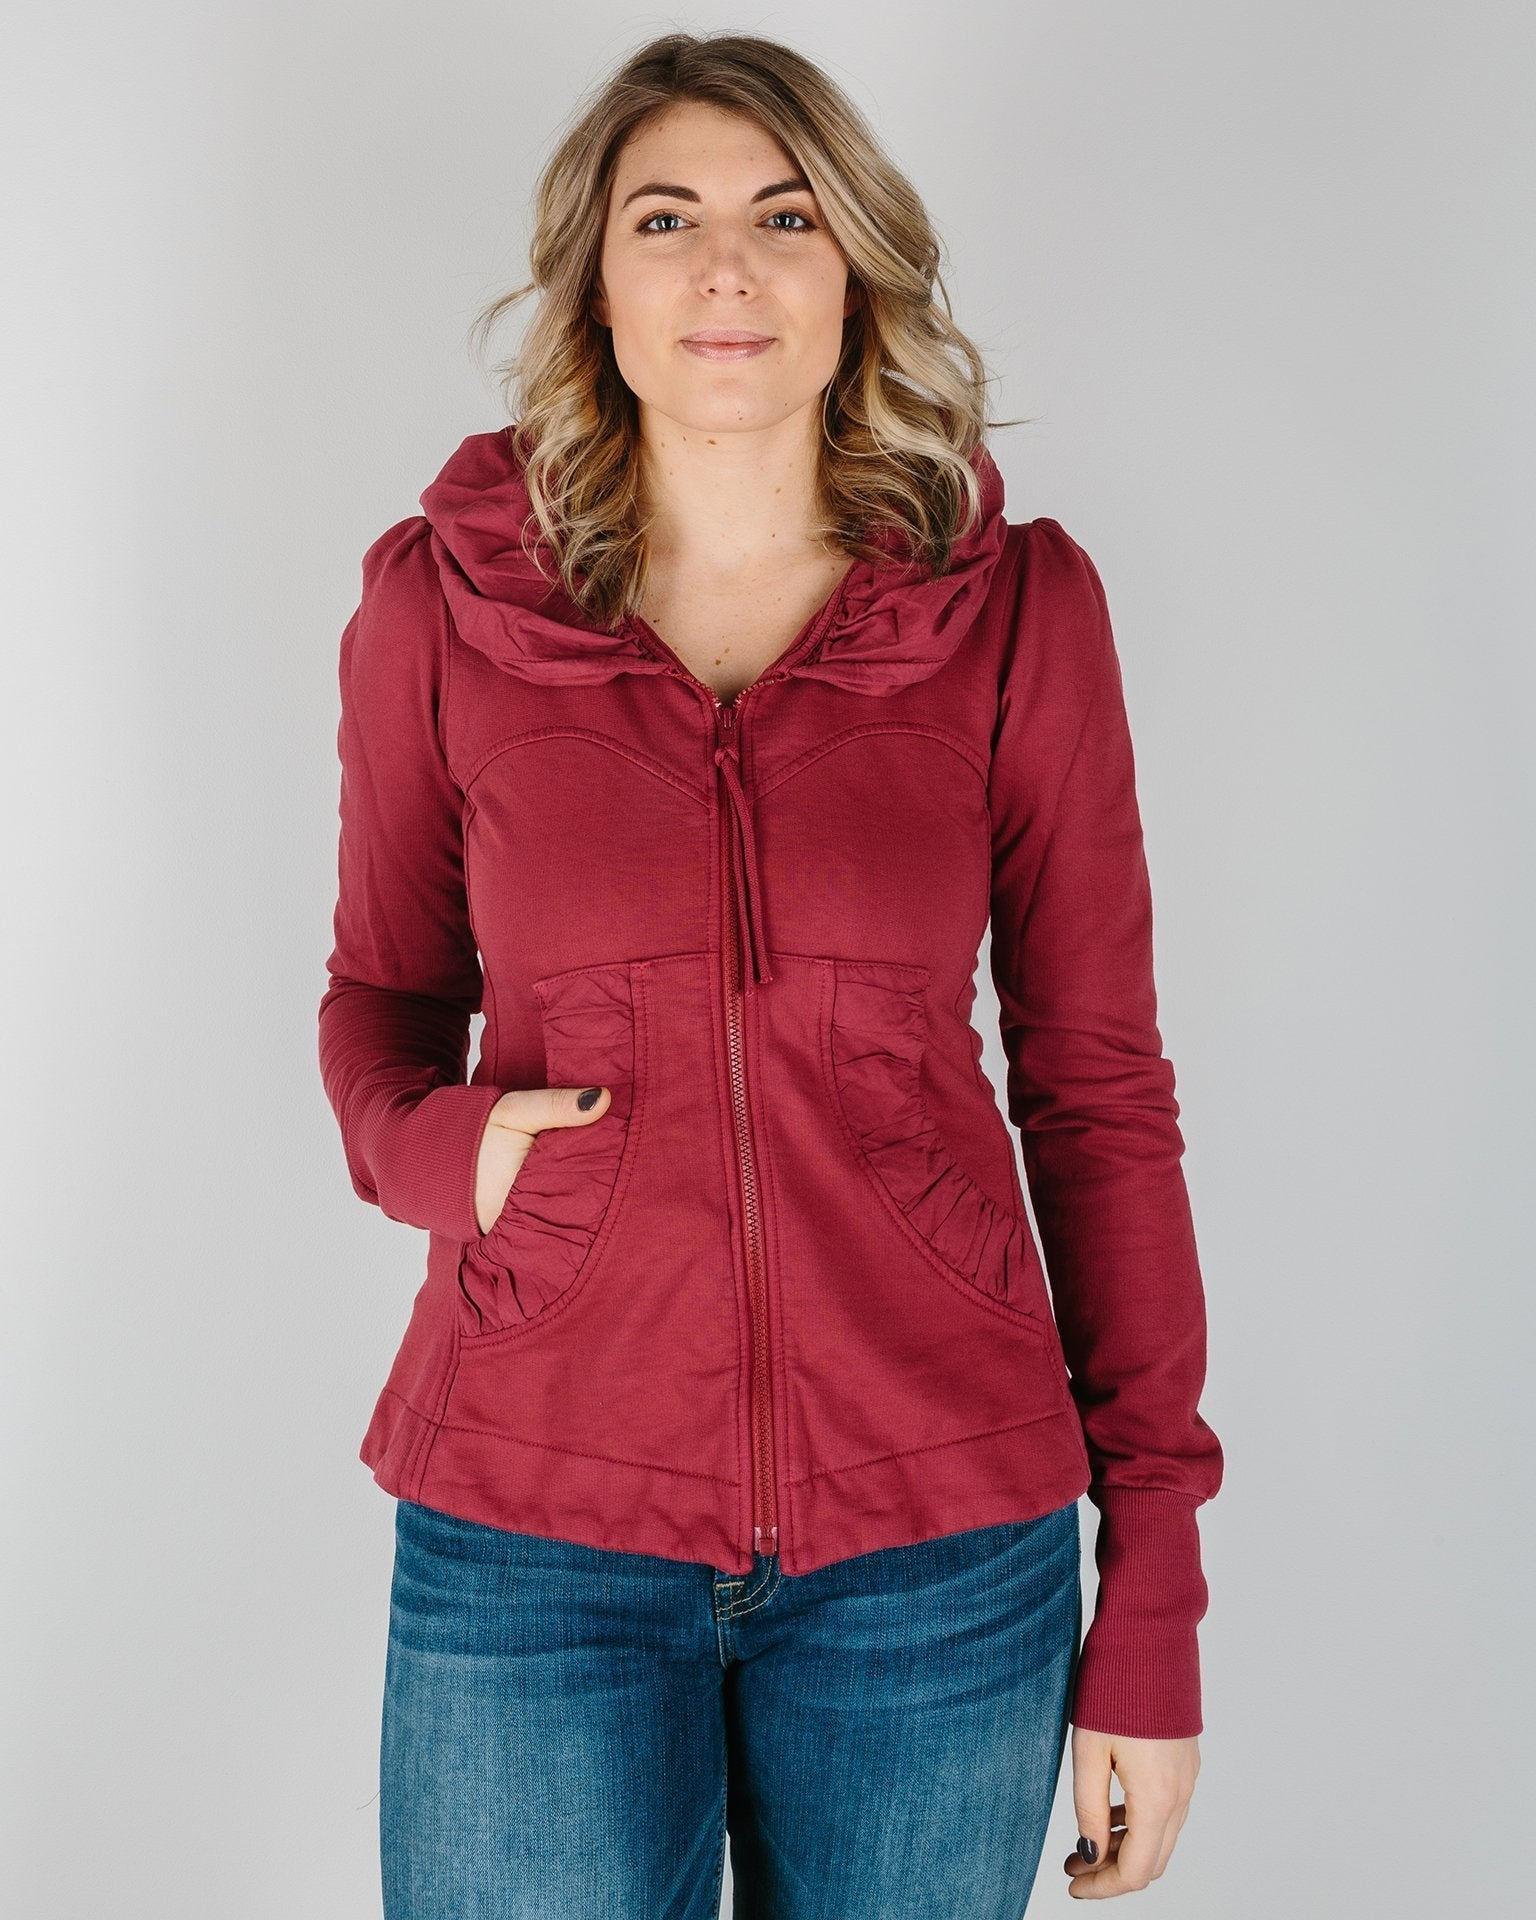 Prairie Underground Clothing Pomegranate / XS Cloak Hoodie in Pomegranate